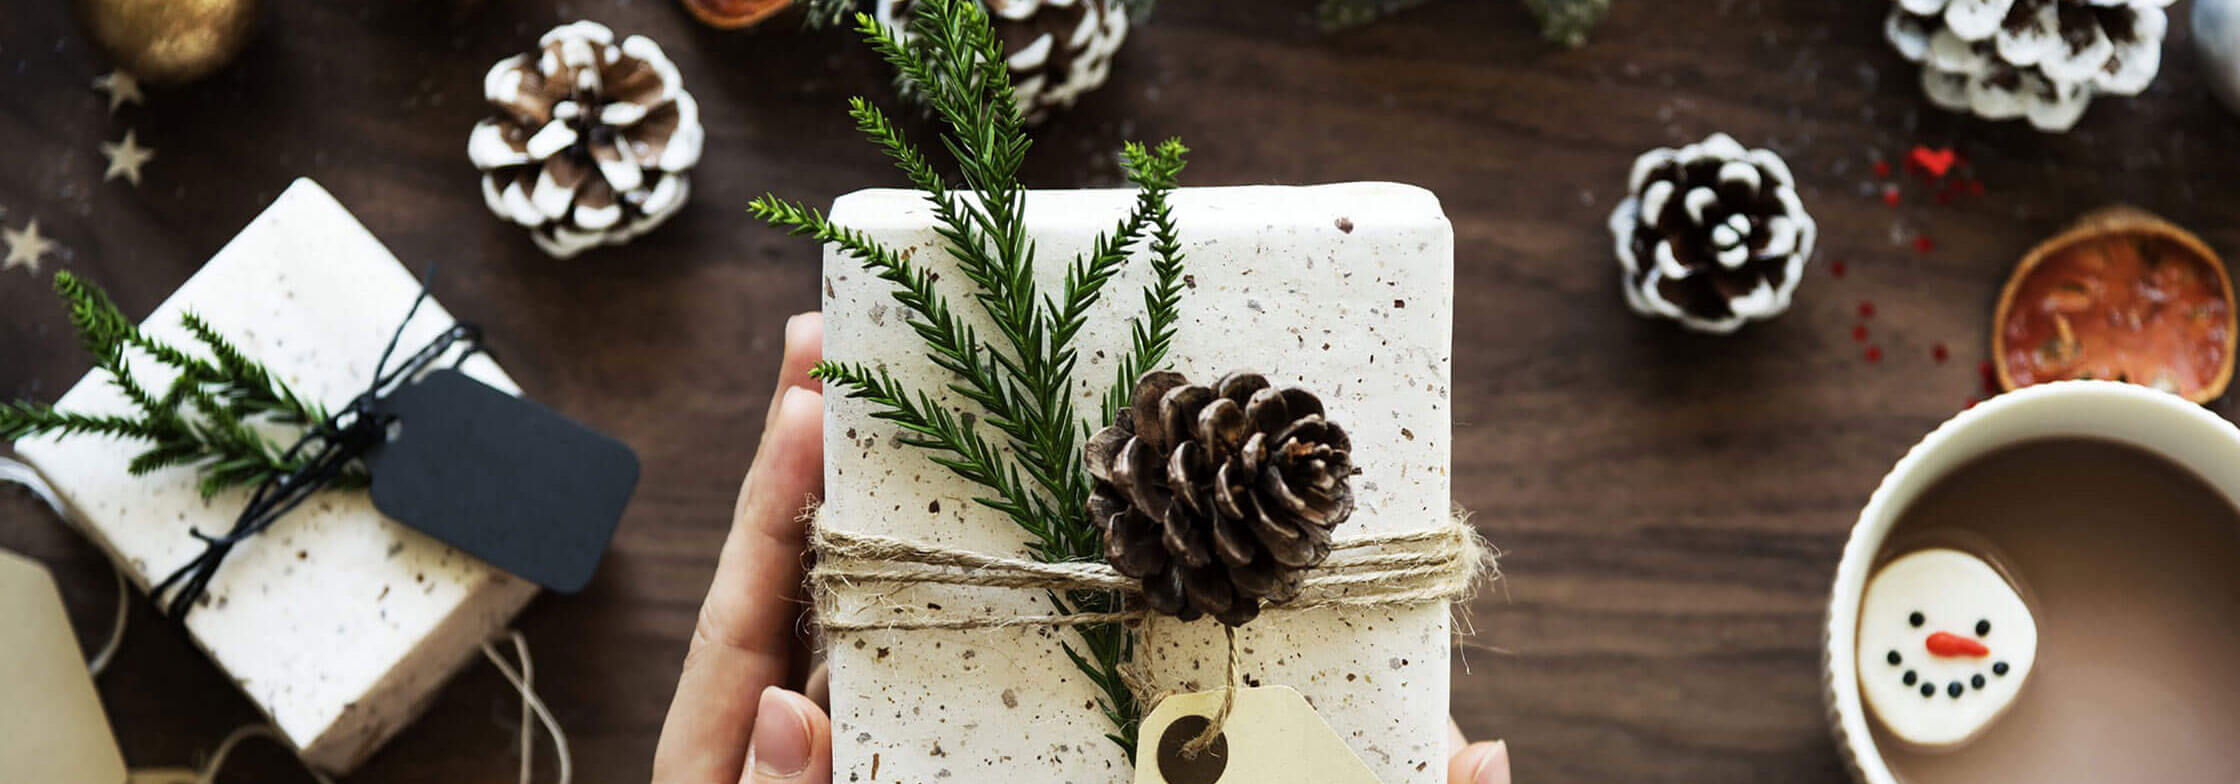 gift-of-digital-marketing-insights